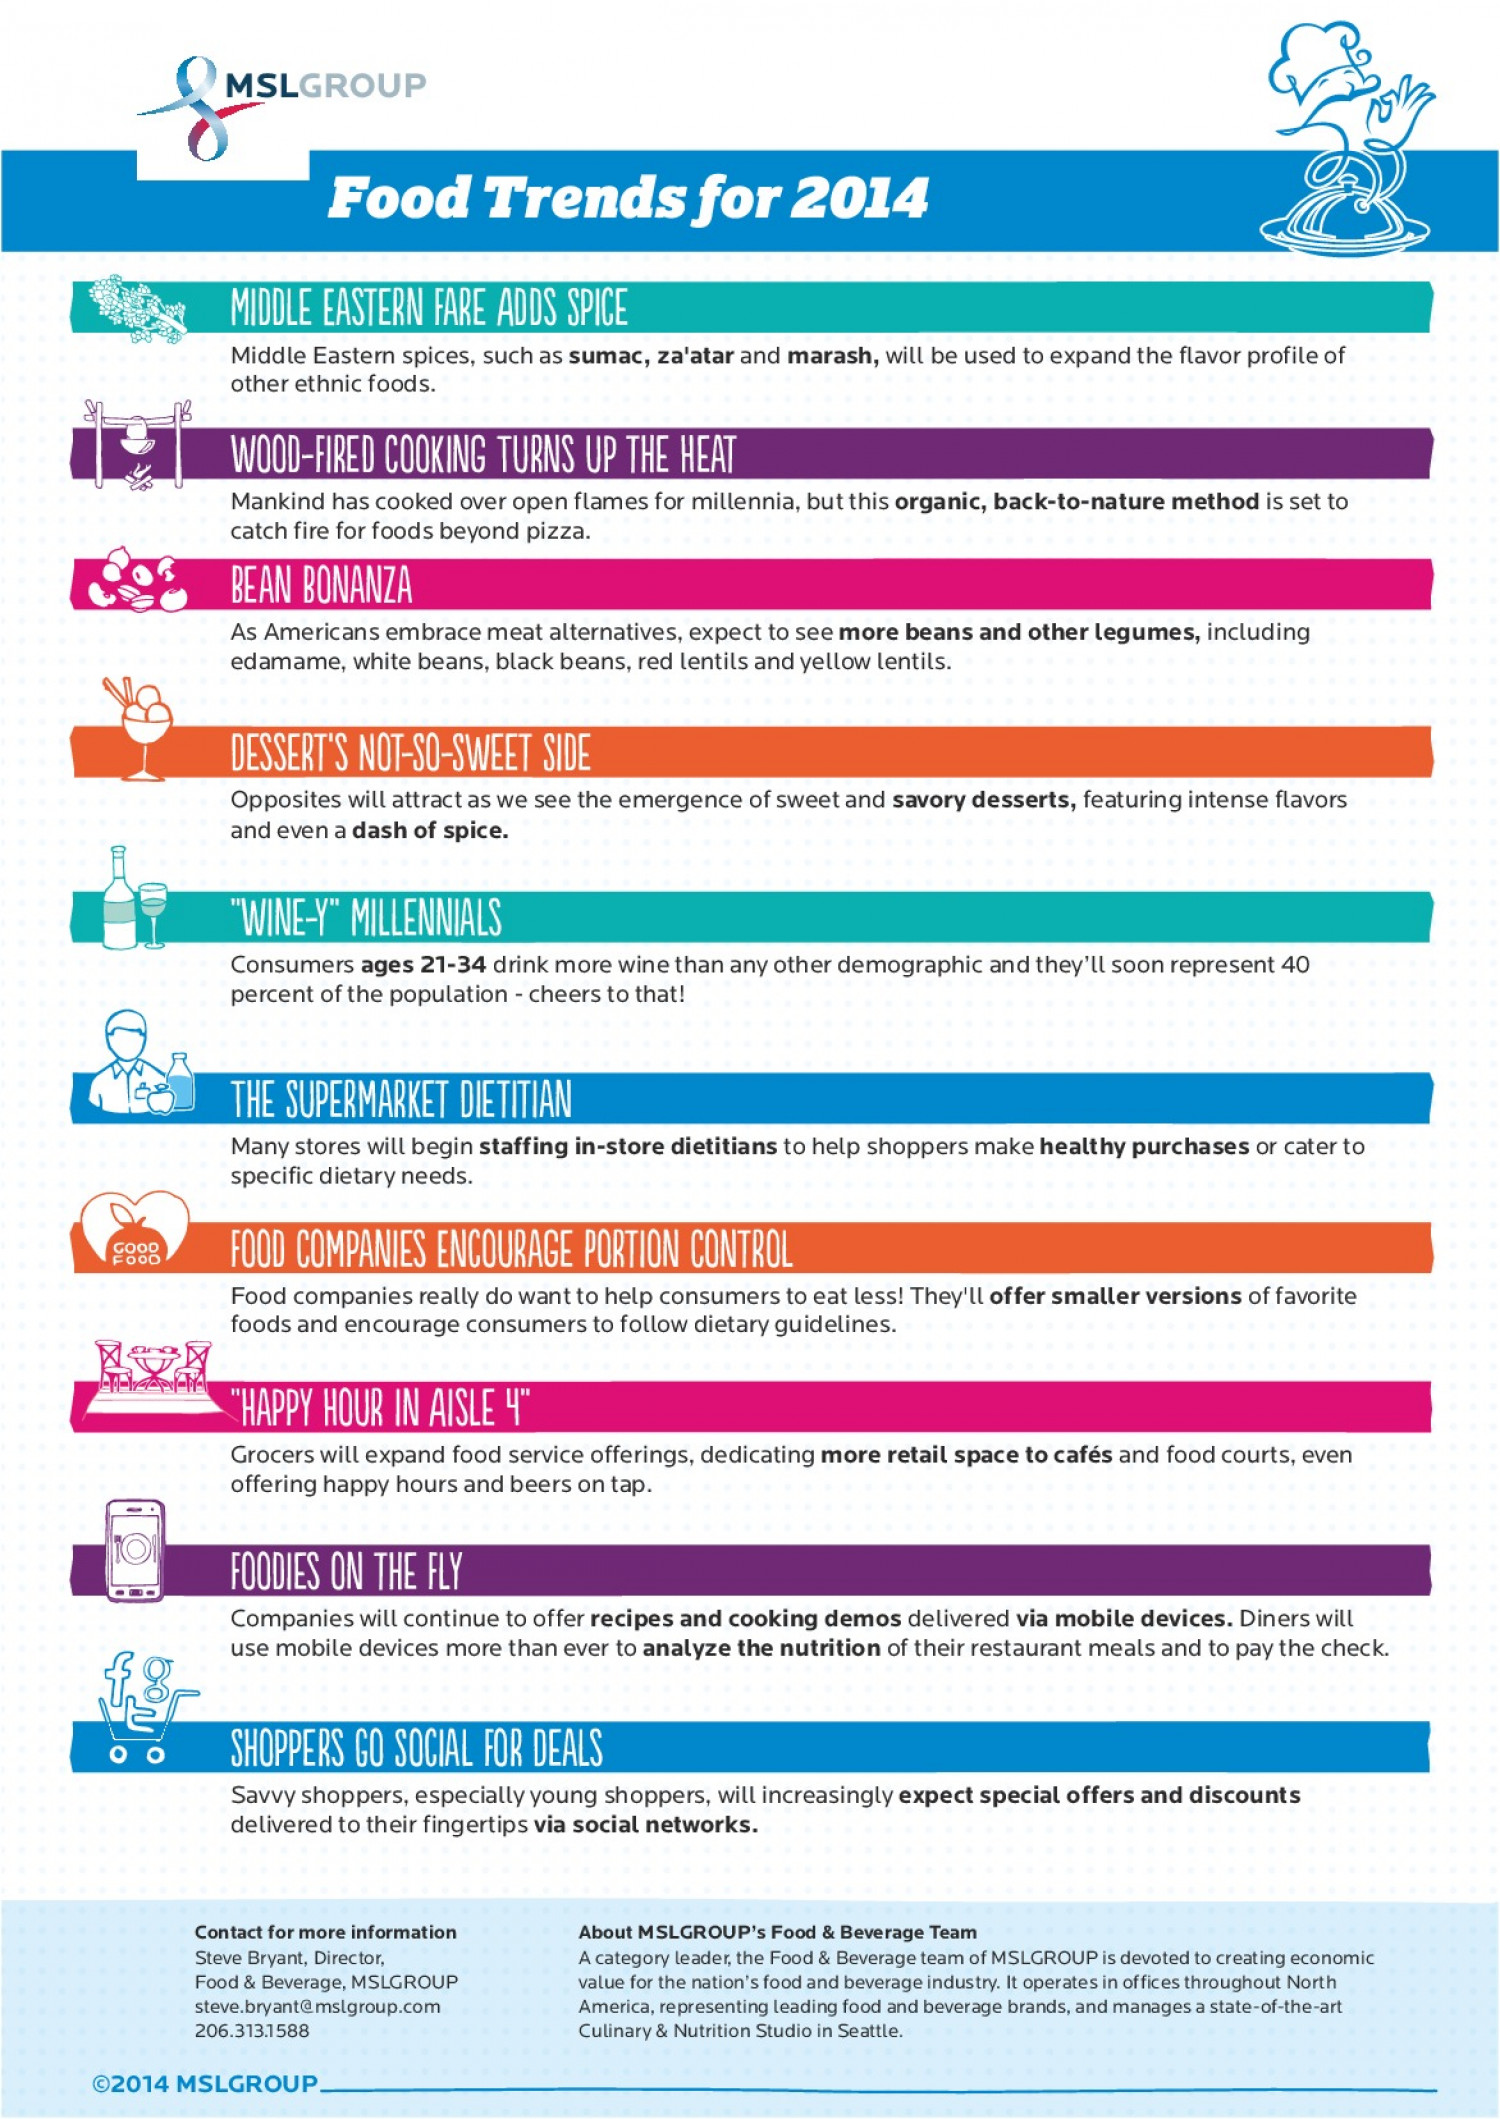 Food & Beverage Trends for 2014 Infographic